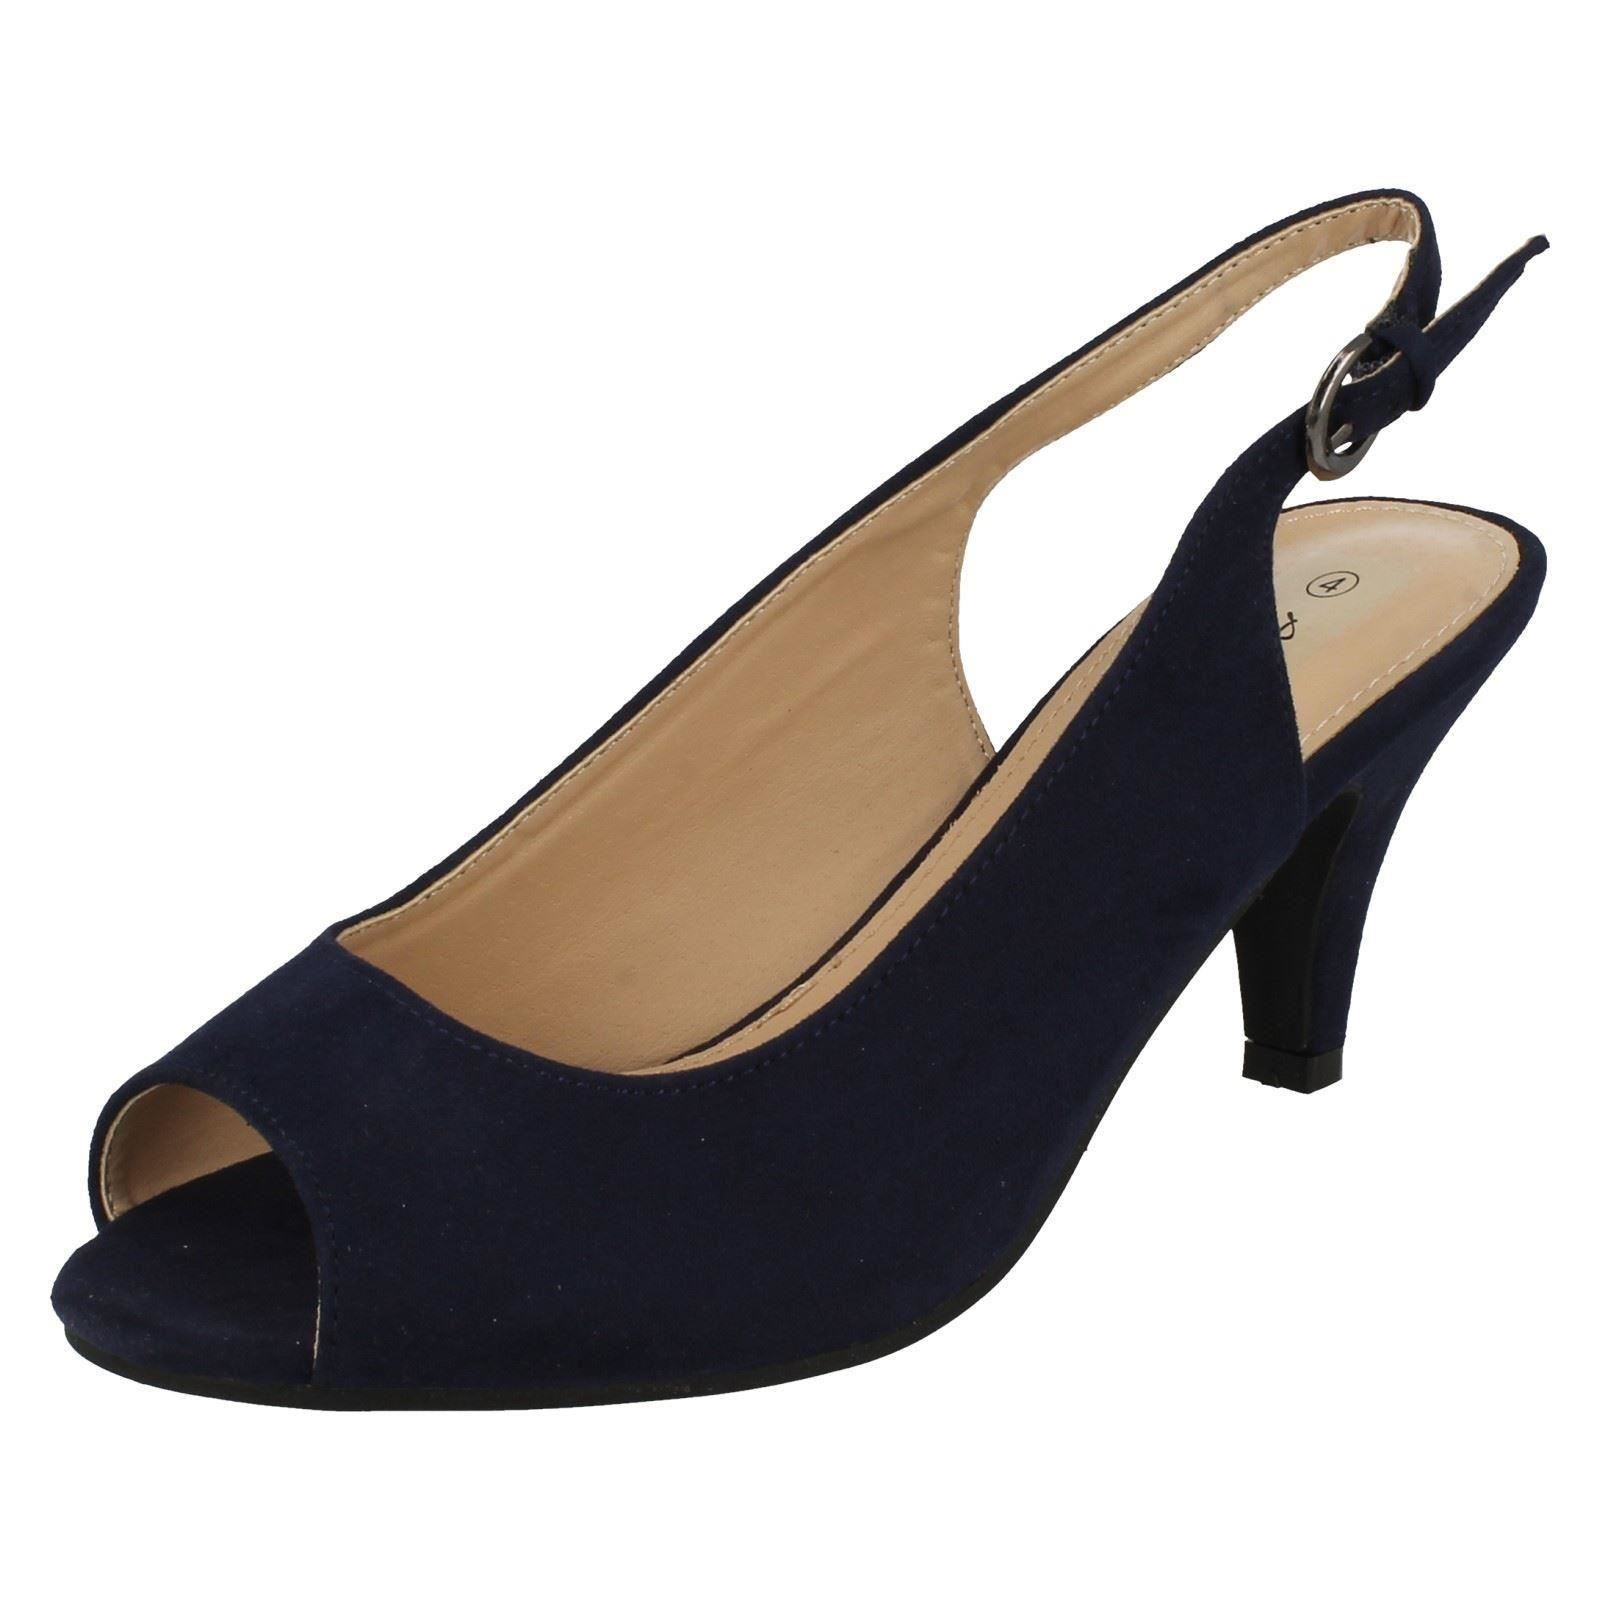 42365e20153a Ladies Anne Michelle PEEP Toe Sling Back Shoes F10593 UK 6 Navy Wide ...